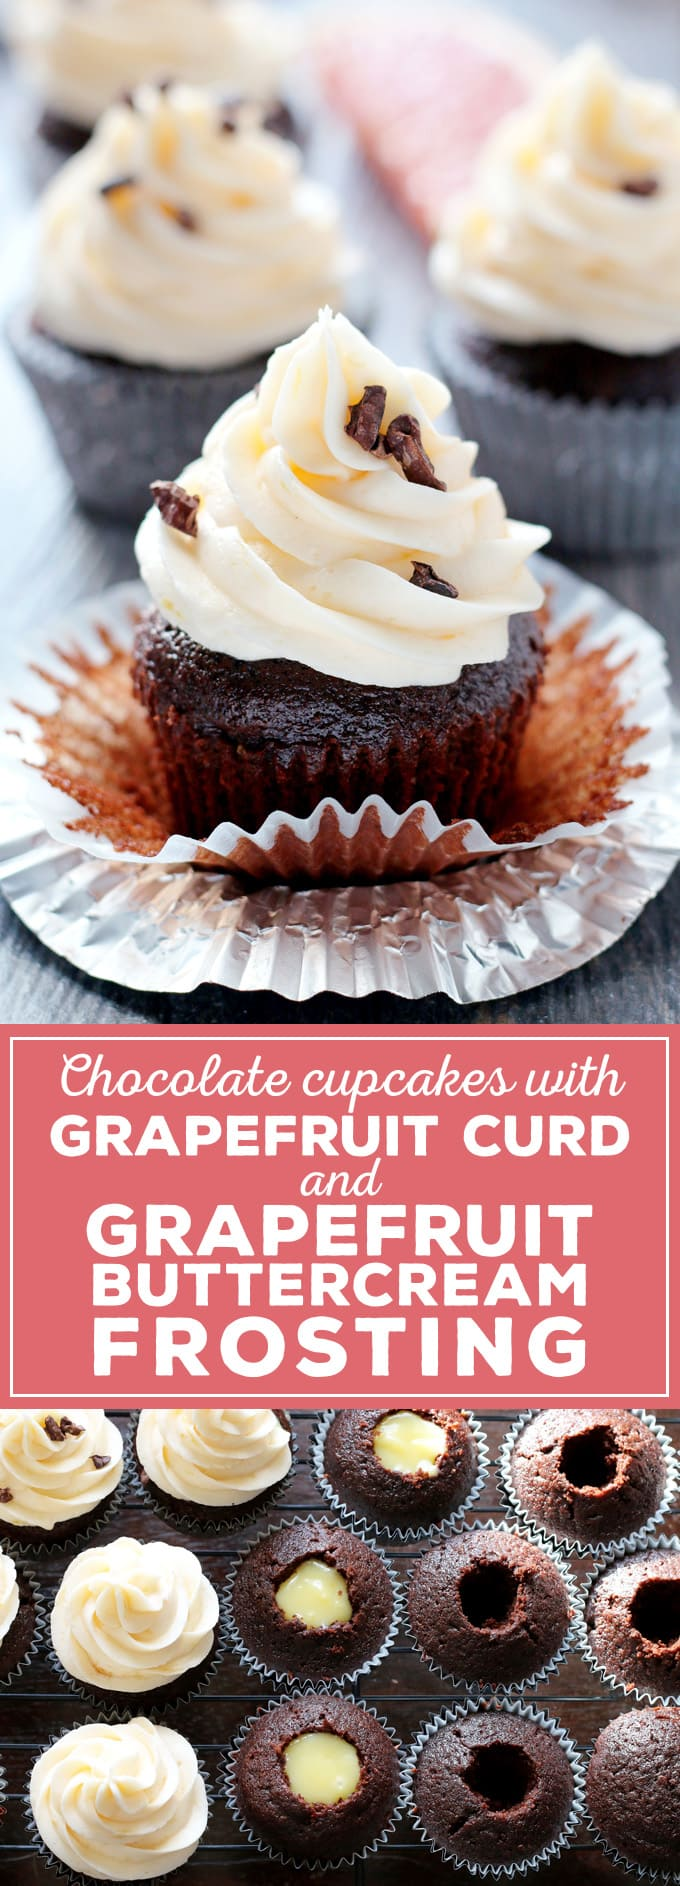 Grapefruit curd and grapefruit buttercream frosting are delicious when enjoyed with your favorite chocolate cupcake recipe. They are the perfect way to enjoy winter citrus! | honeyandbirch.com